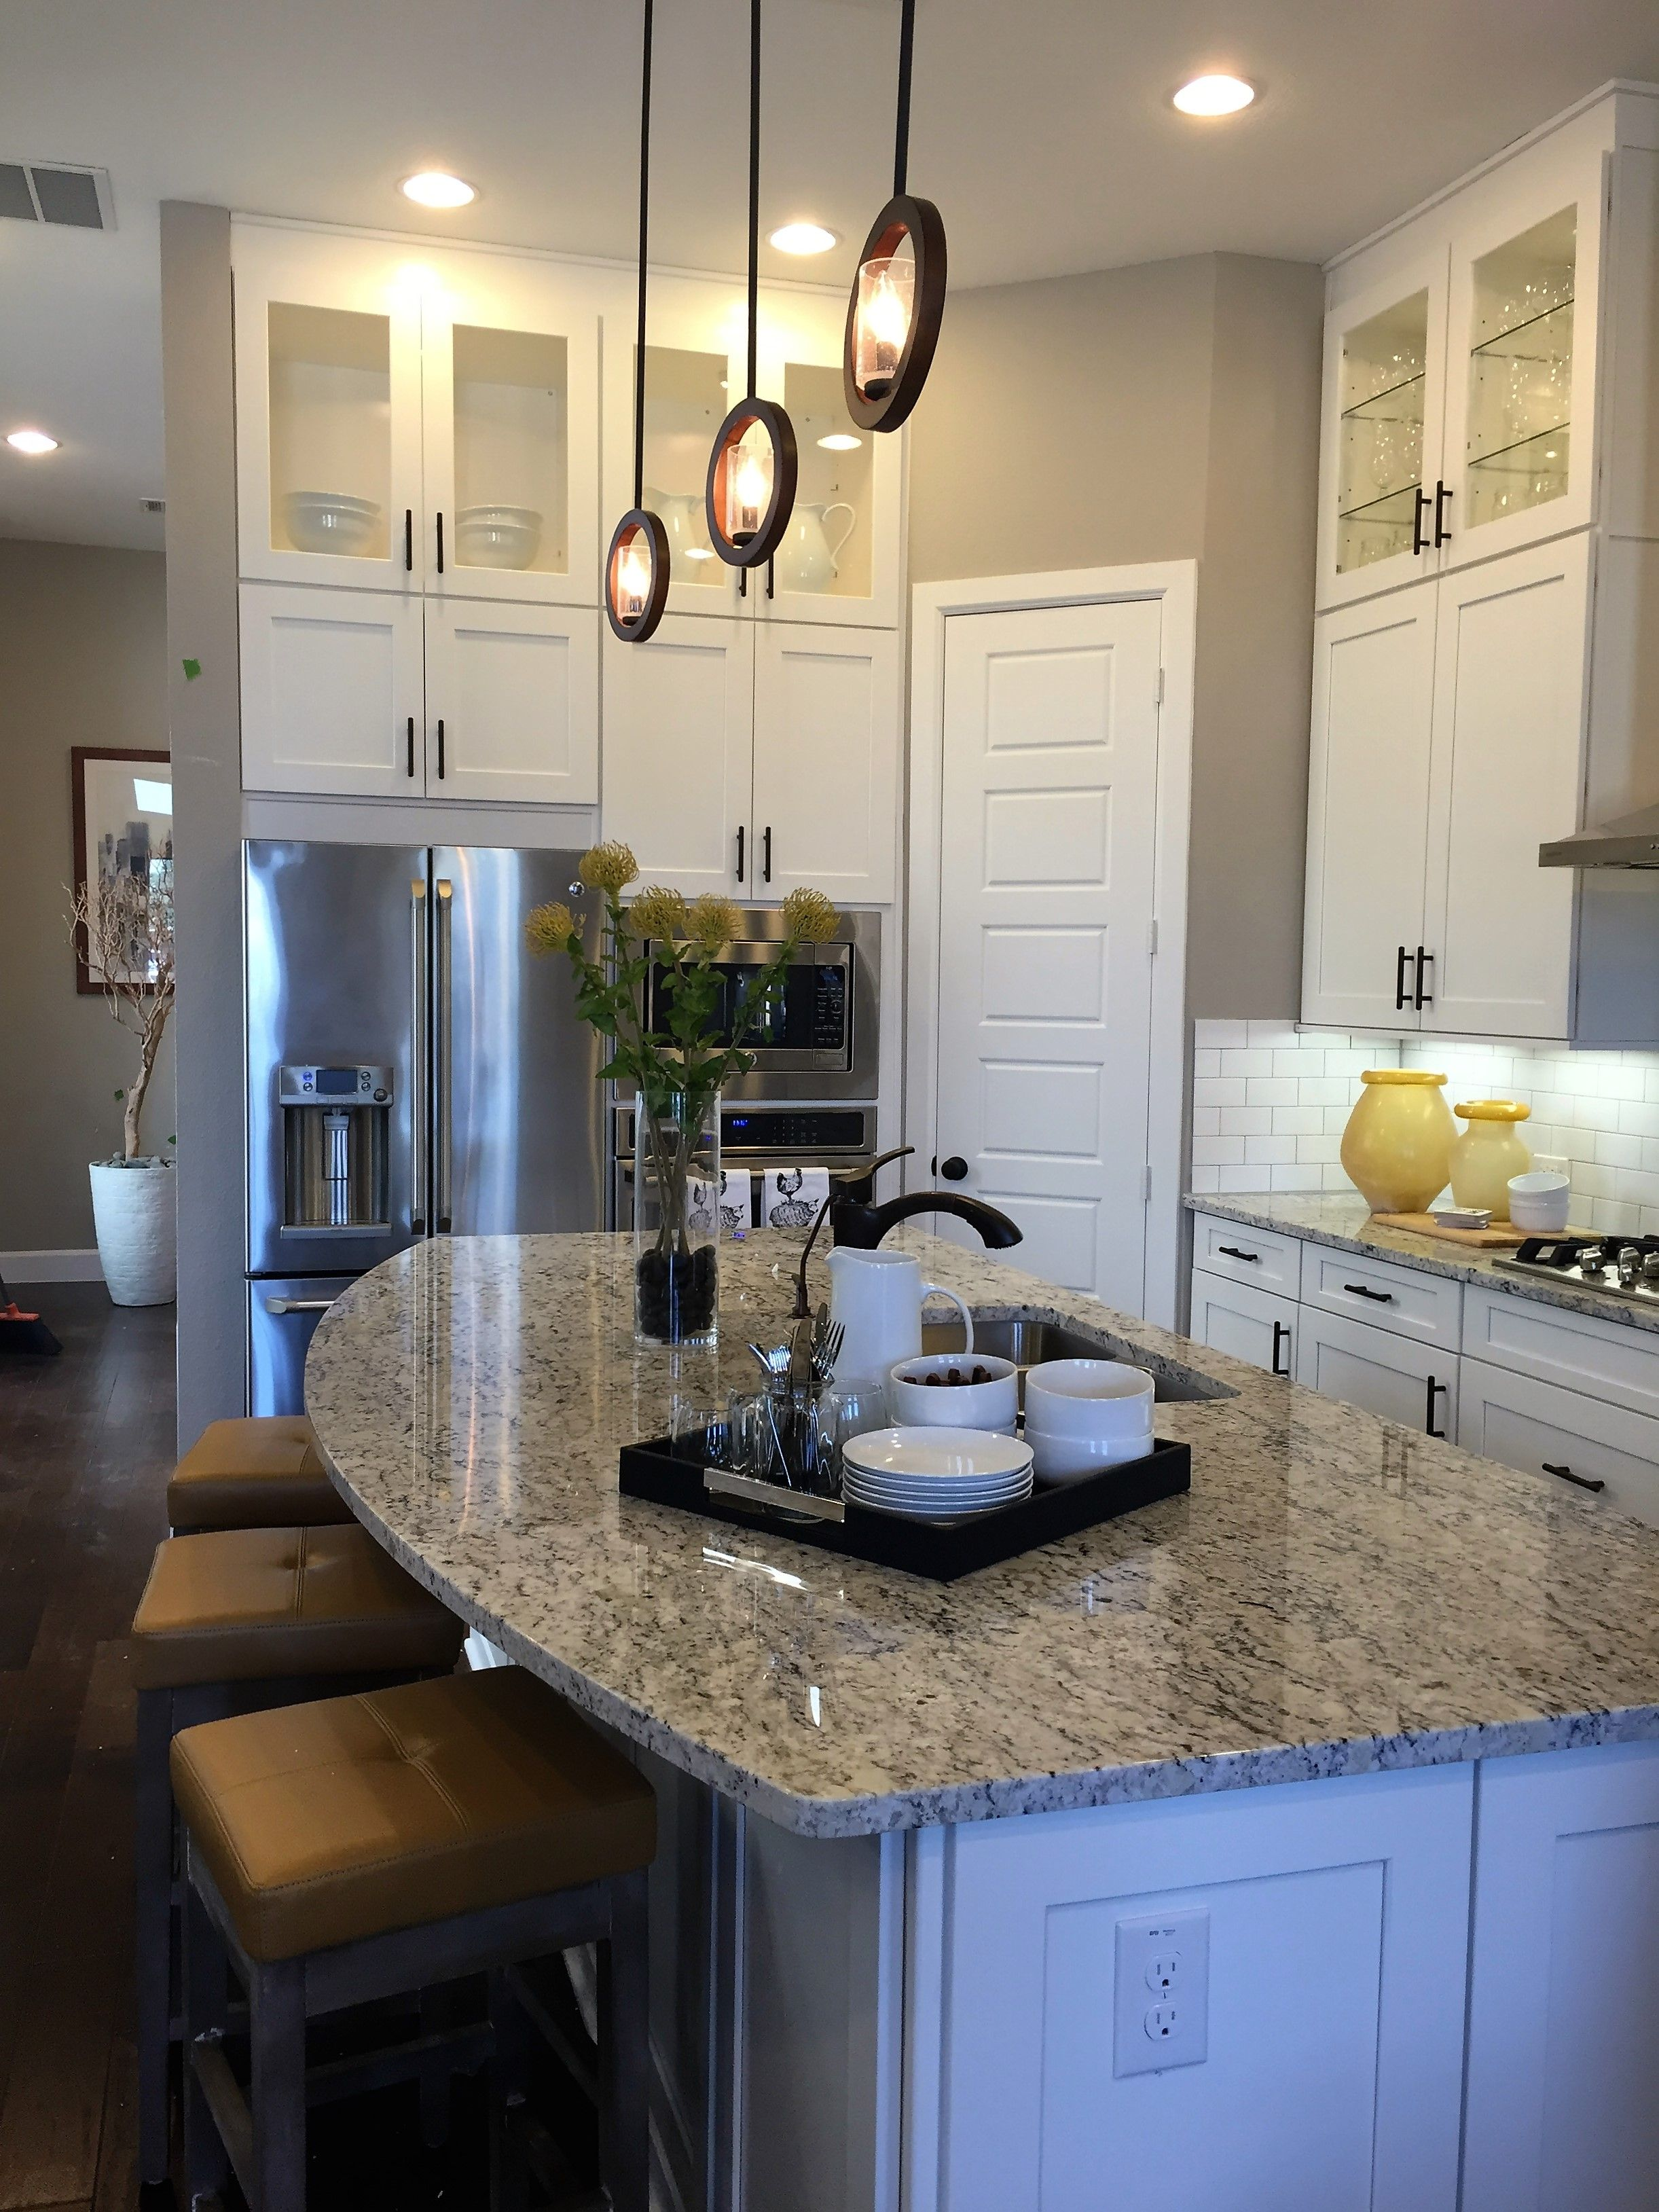 Our single family ision has been hard at work this week installing david  also best home ideas and decor images on pinterest for rh